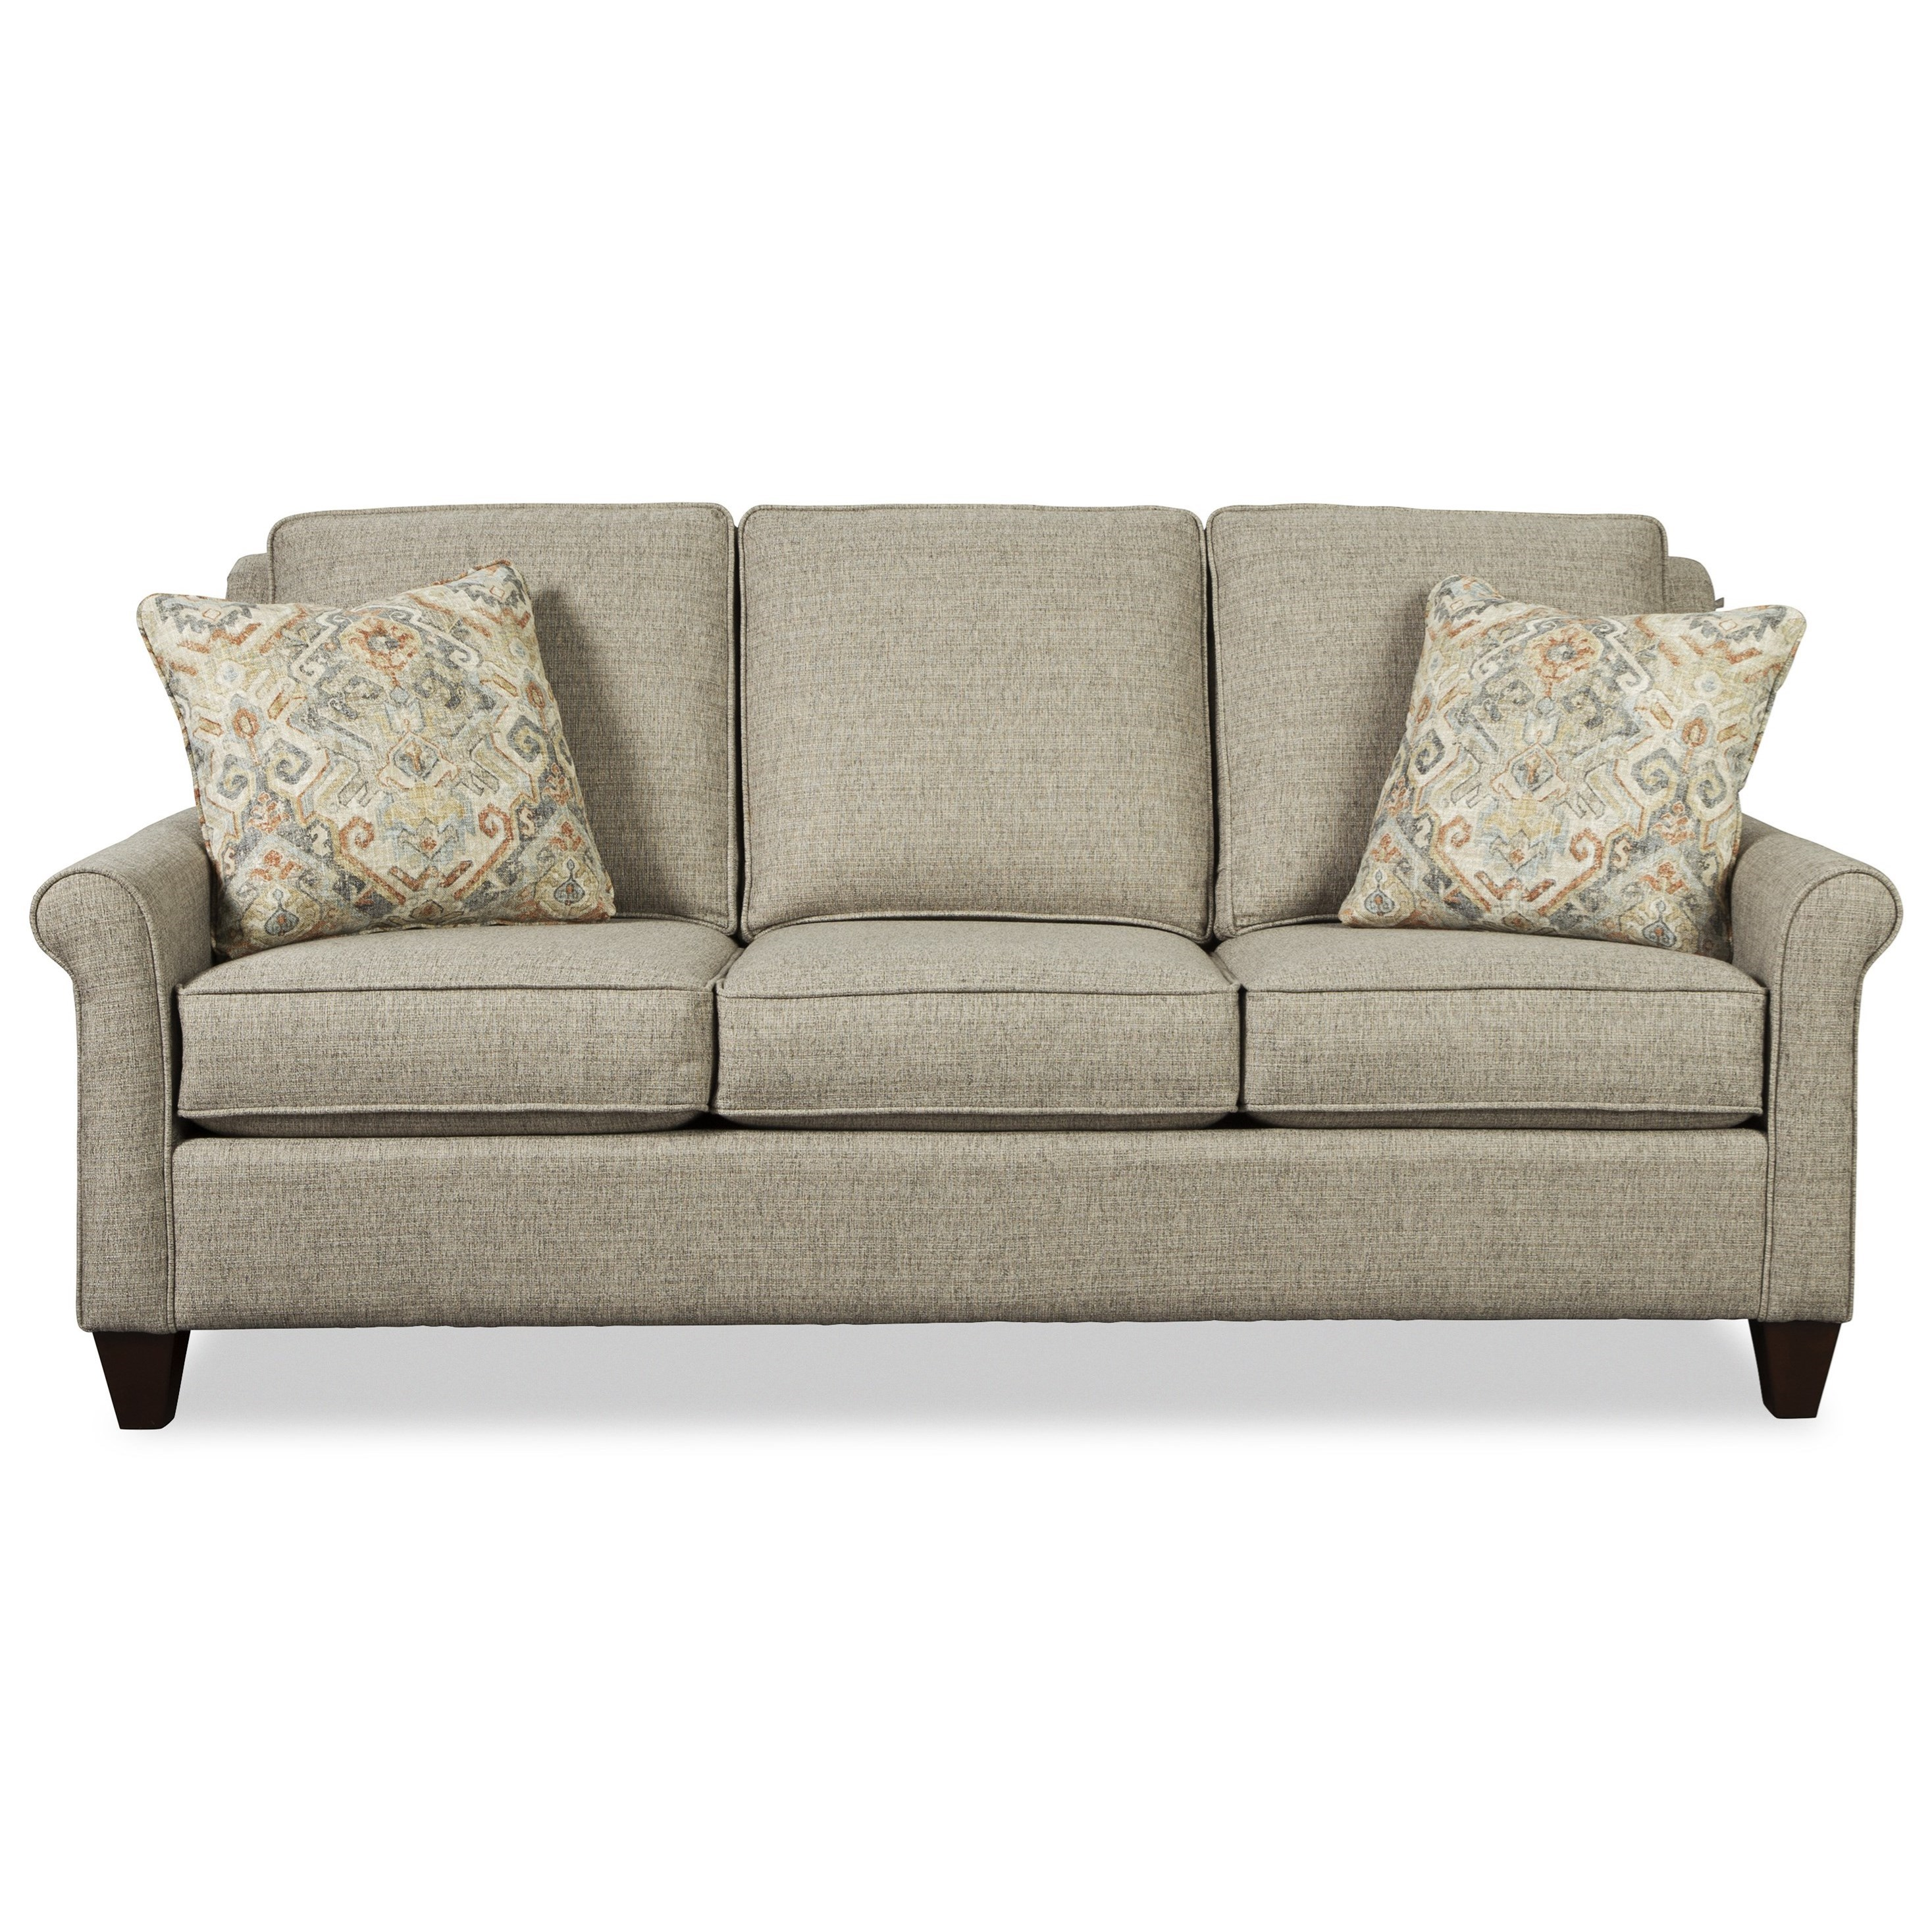 Craftmaster 784850 Casual 79 Inch Sofa With Queen Sleeper